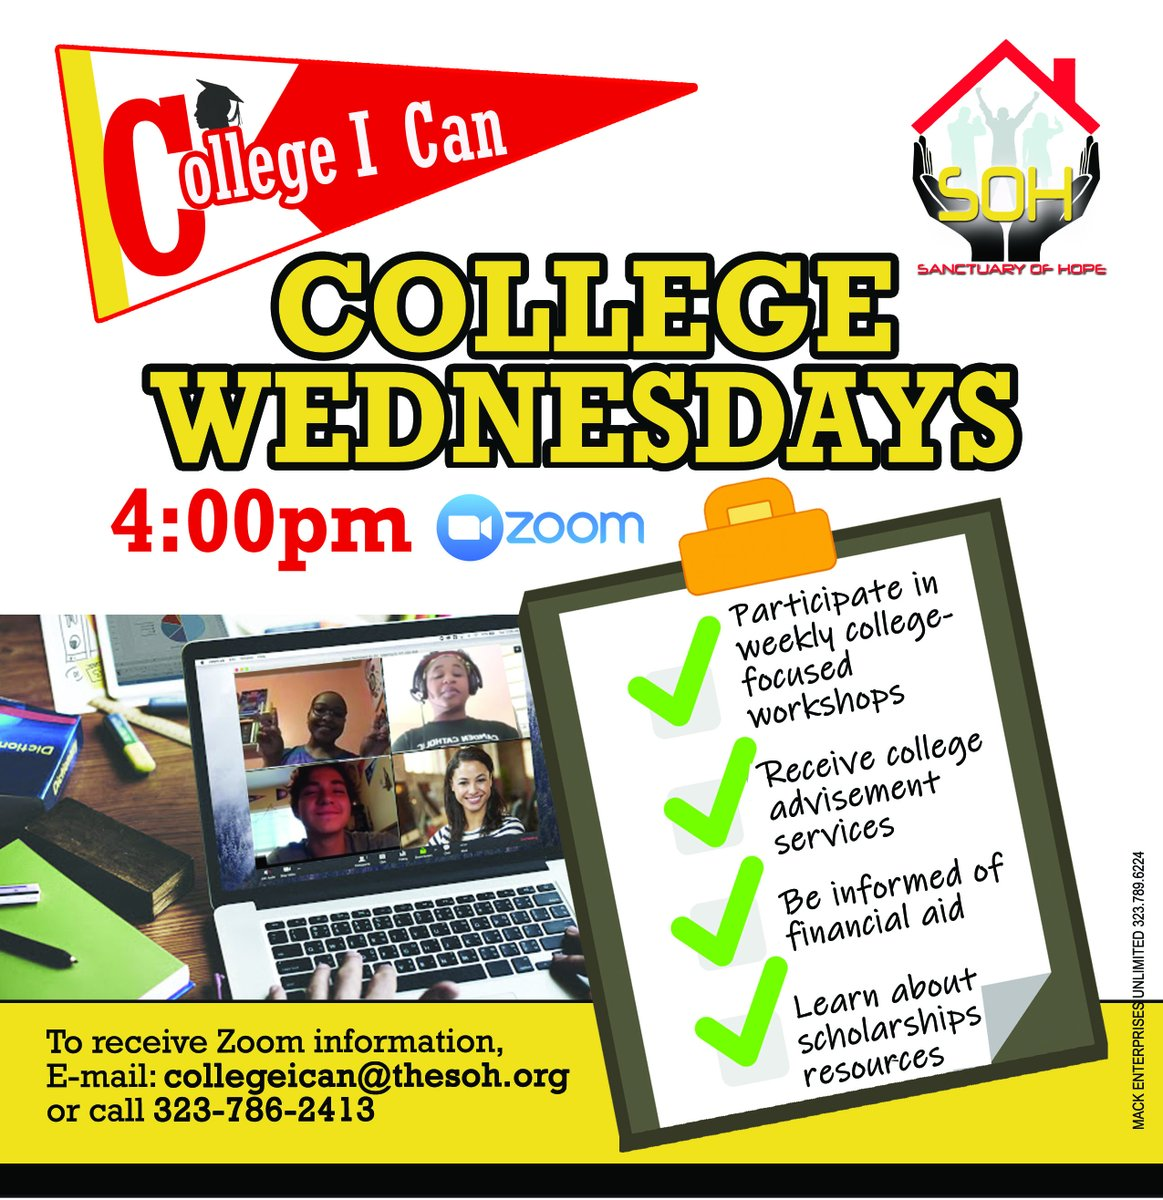 College I Can is back, every Wednesday on zoom! Please RSVP.  #CollegeICan  #HigherLearning #College #YouthResiliency #RonaResource #CollegeSigningDay #RemoteLearning https://t.co/78gFgNoxG7